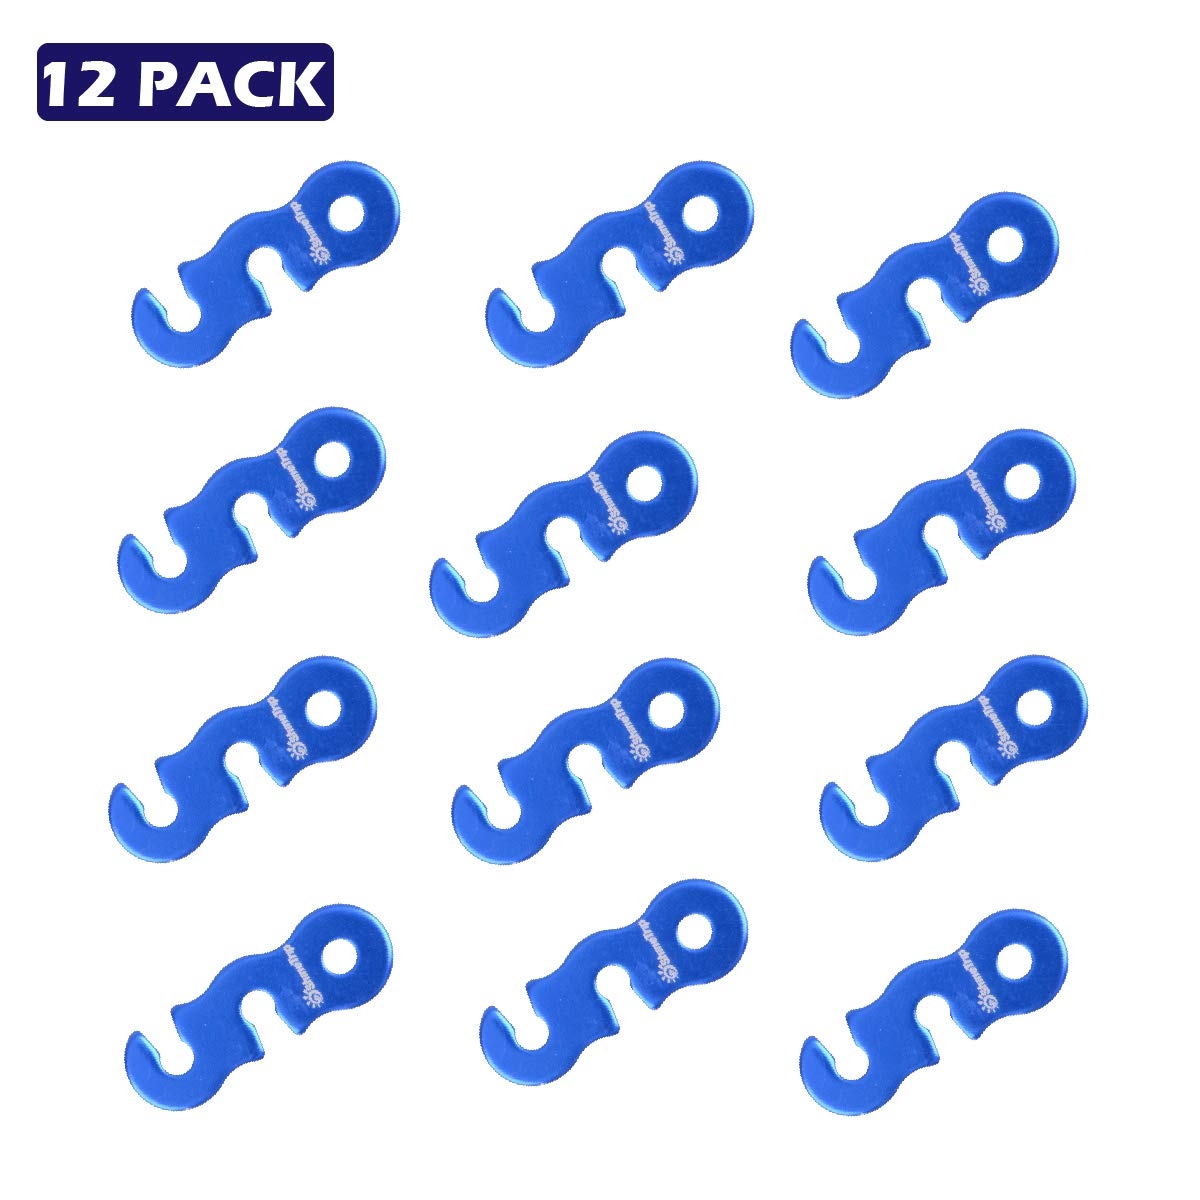 Azarxis 12 PCS Aluminum Alloy Tent Tensioners Rope Adjuster Guyline Cord Adjuster Wind Rope Buckle Lightweight for Tent Camping Hiking Backpacking Picnic Shelter Outdoor